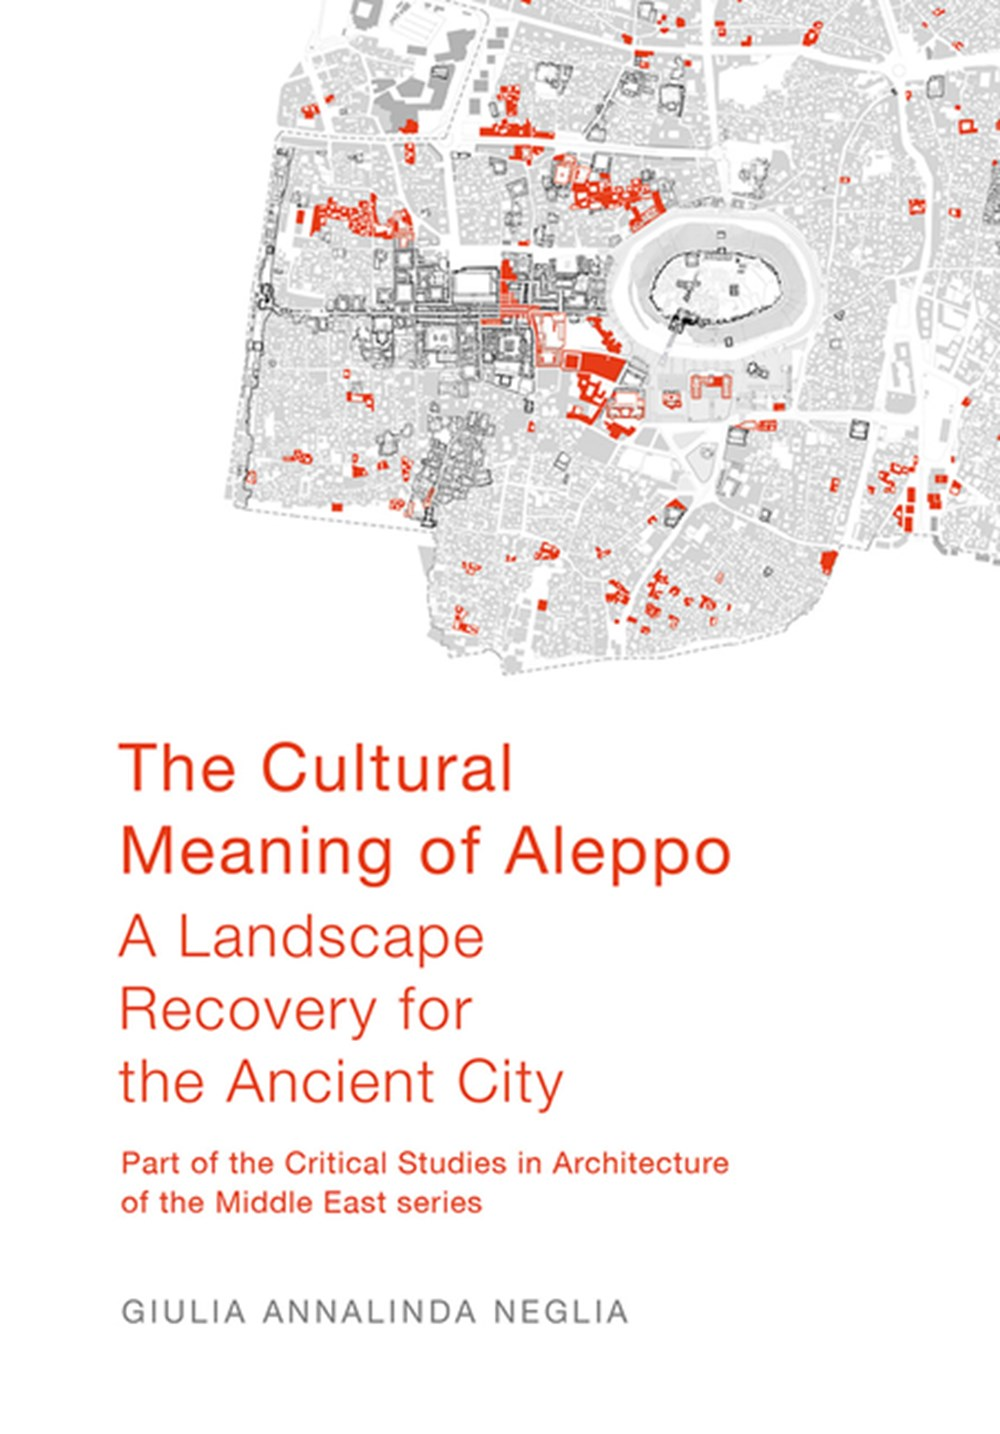 Cultural Meaning of Aleppo A Landscape Recovery for the Ancient City